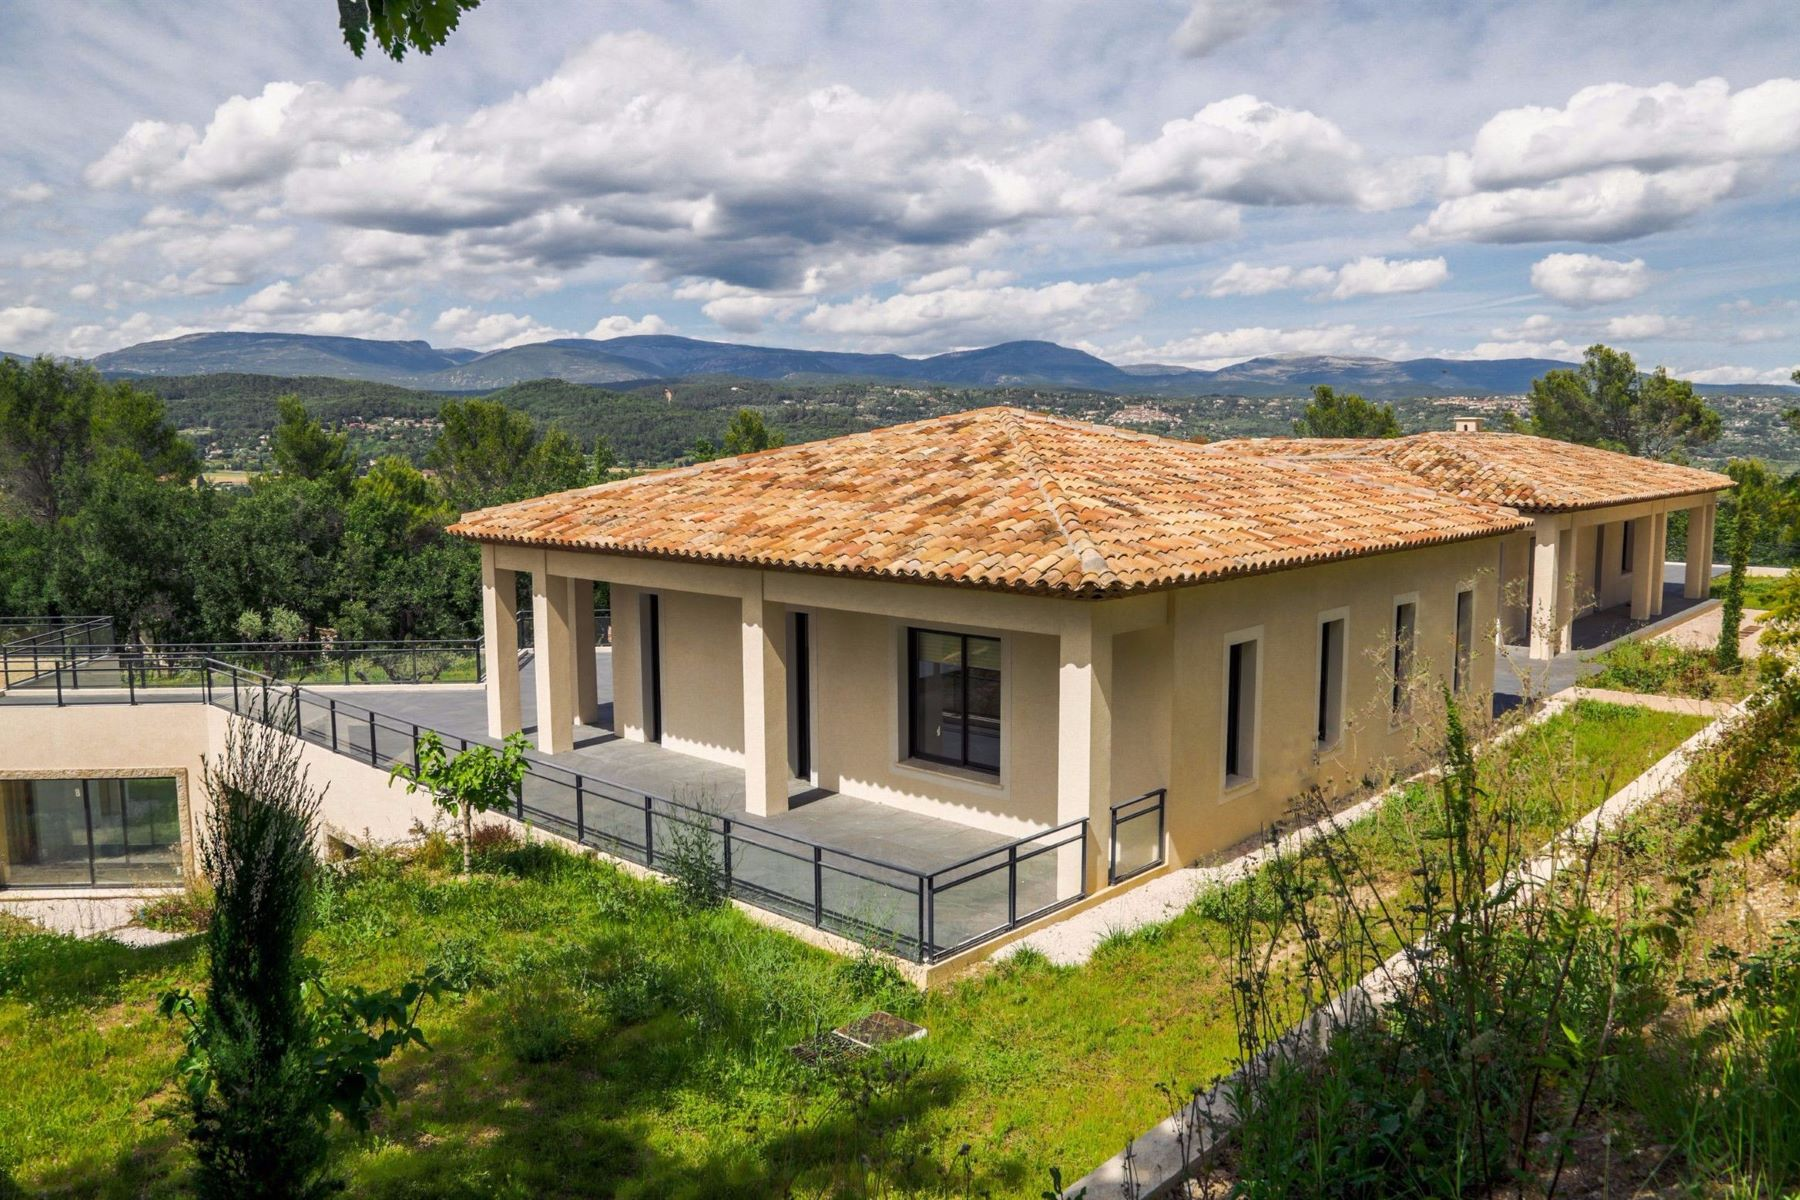 Single Family Home for Sale at Sole agent - Terre Blanche - newly built villa Tourrettes, Provence-Alpes-Cote D'Azur, 83440 France